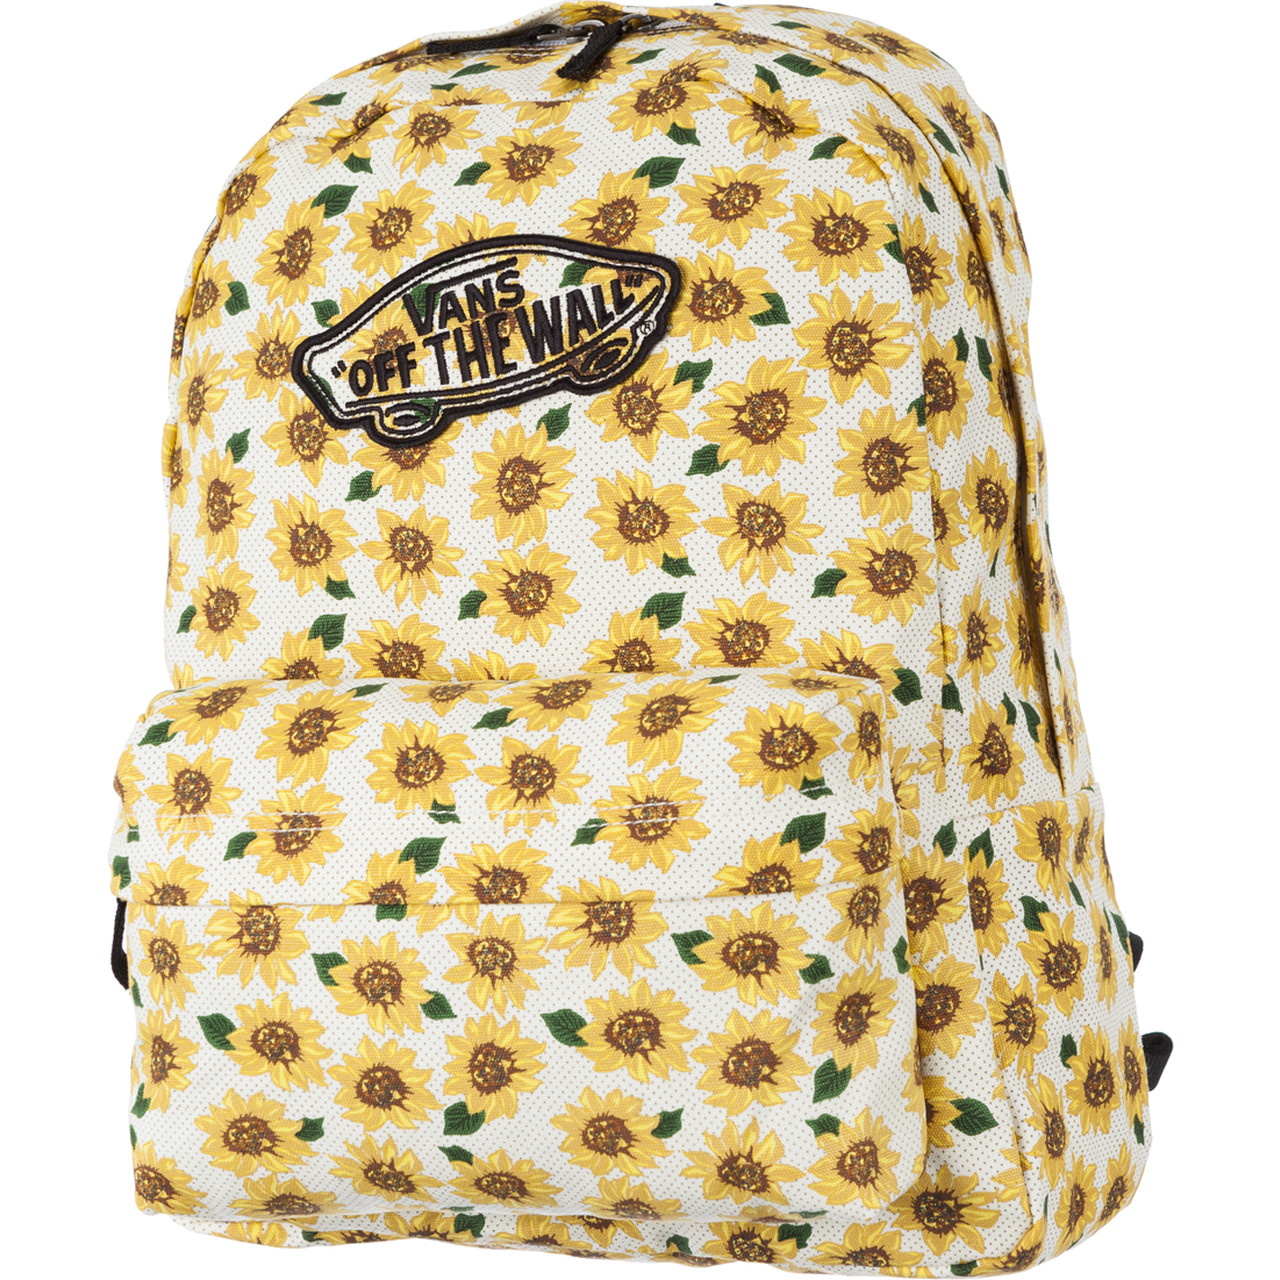 0d5374585c Buy 2 OFF ANY vans sunflower backpack CASE AND GET 70% OFF!